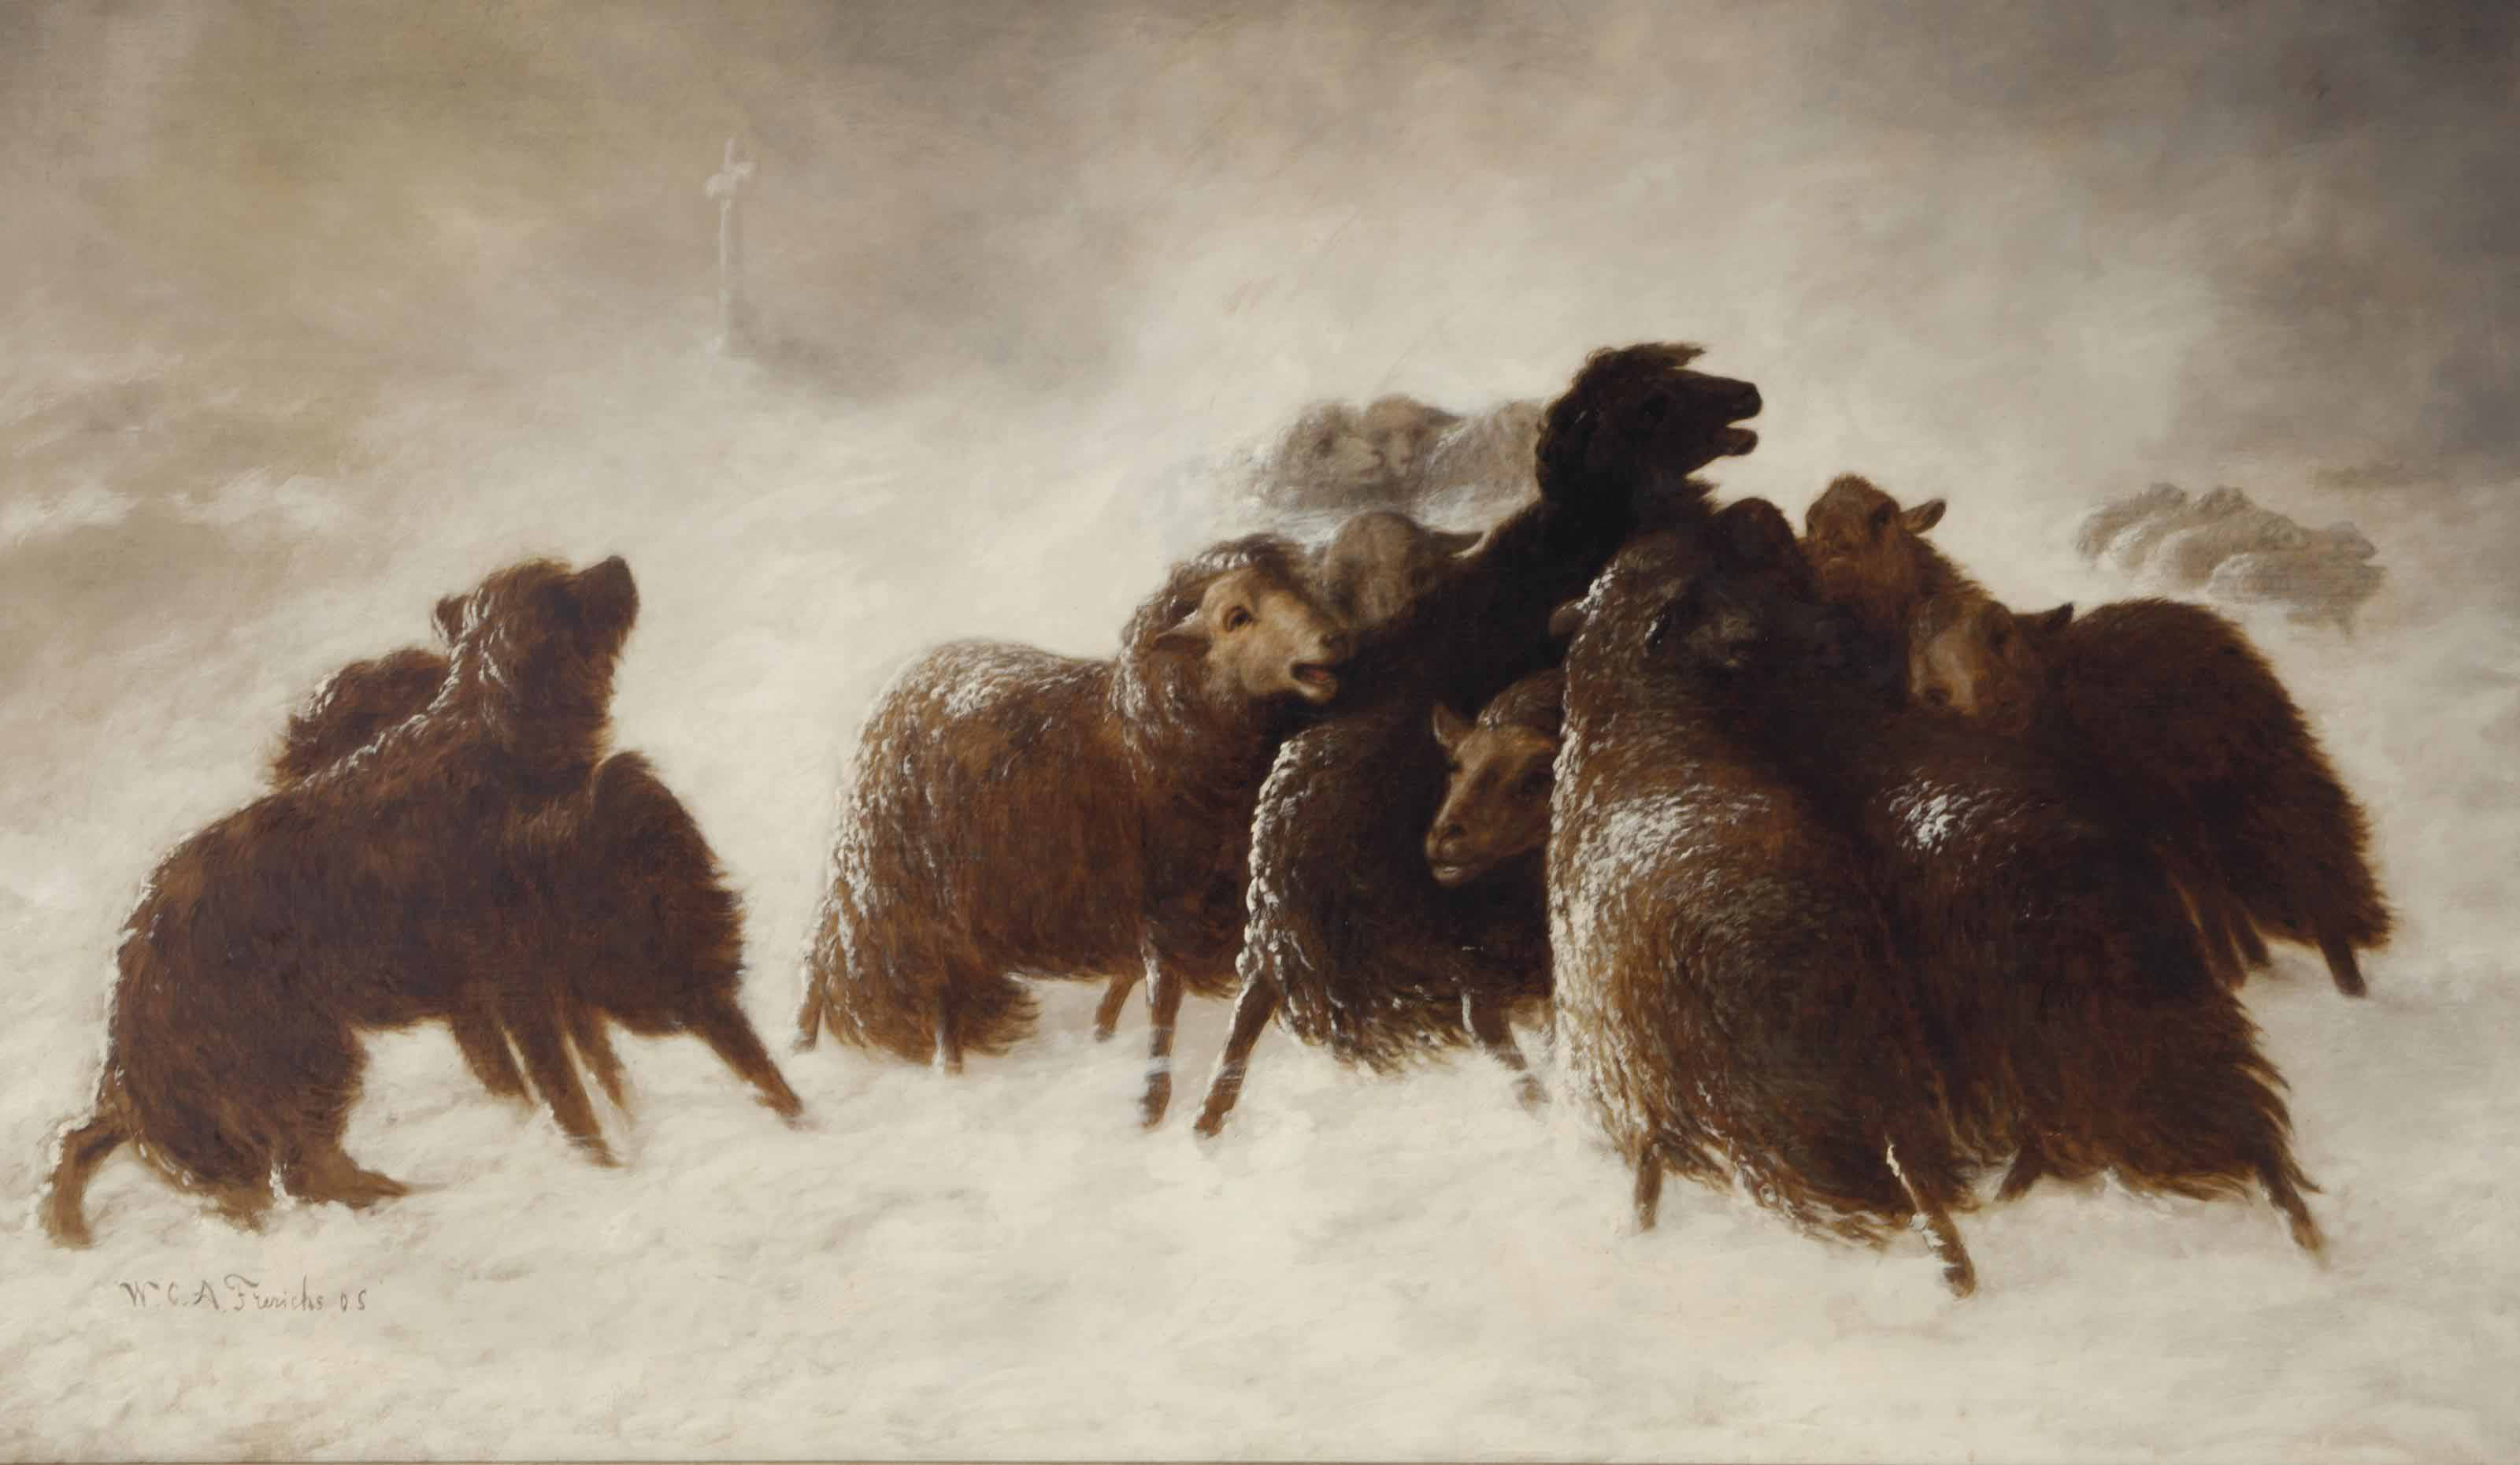 Sheep in a snow storm